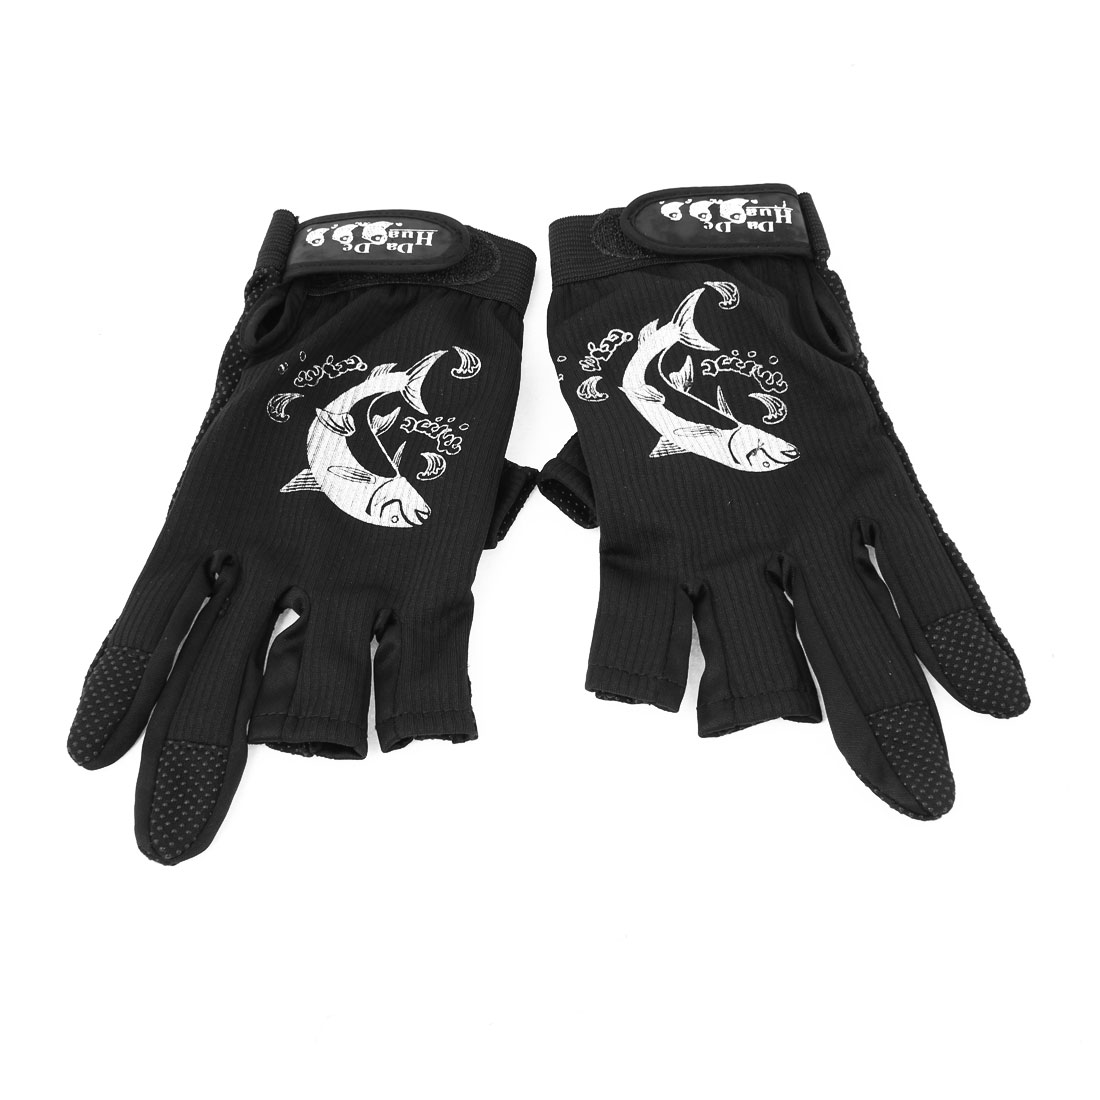 Unique Bargains Adjustable Anti-slip Full/Half Finger Gloves for Motorcycle Riding Cycling